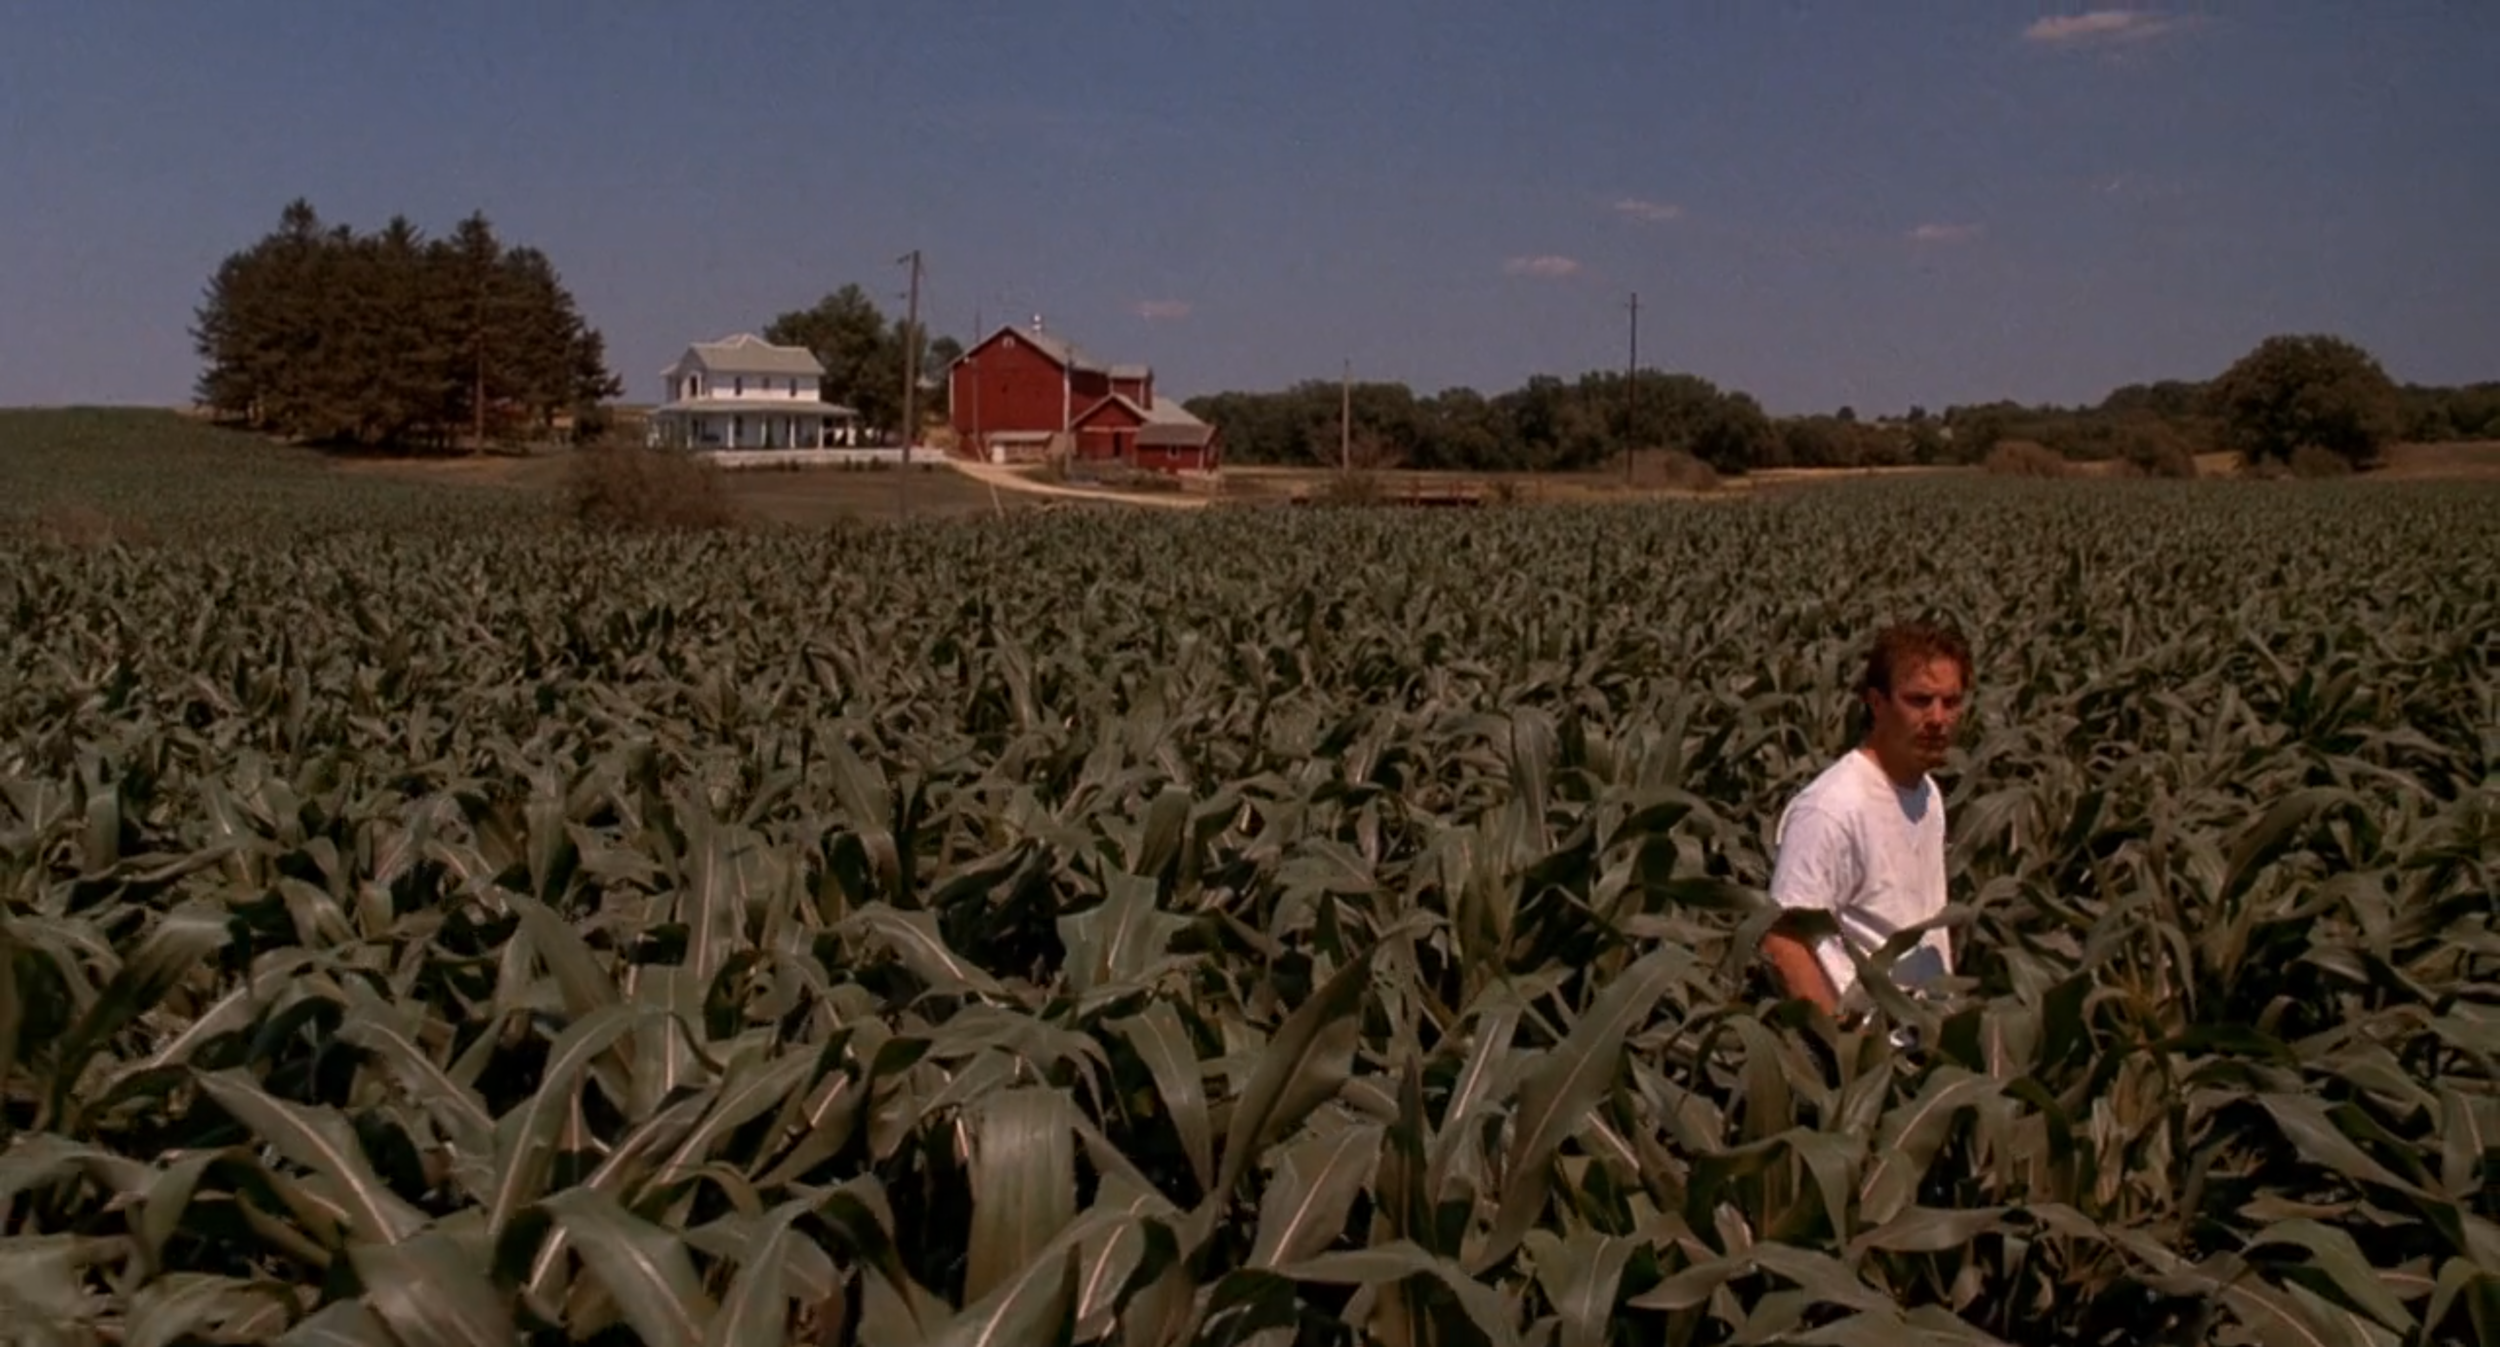 g9 22 Things You Might Not Have Realised About Field Of Dreams